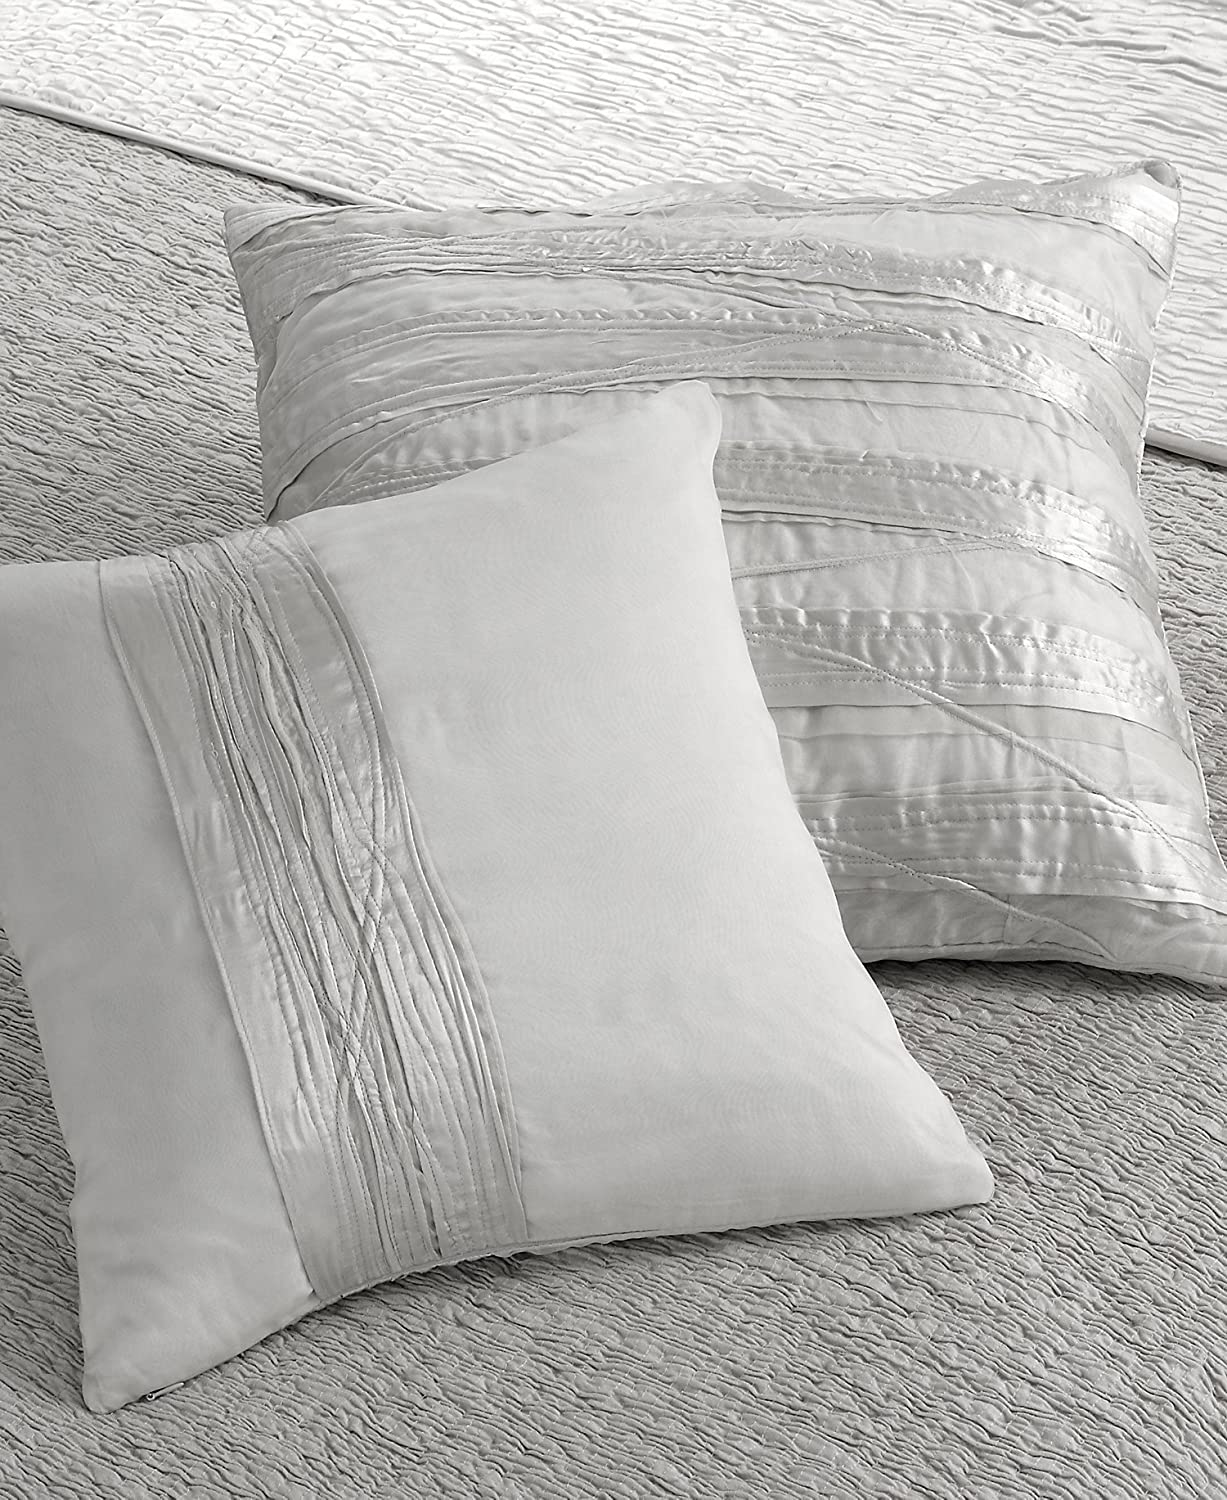 L Erba Private Sanctuary Decorative Pillow 20x20 White Stripes Home Kitchen